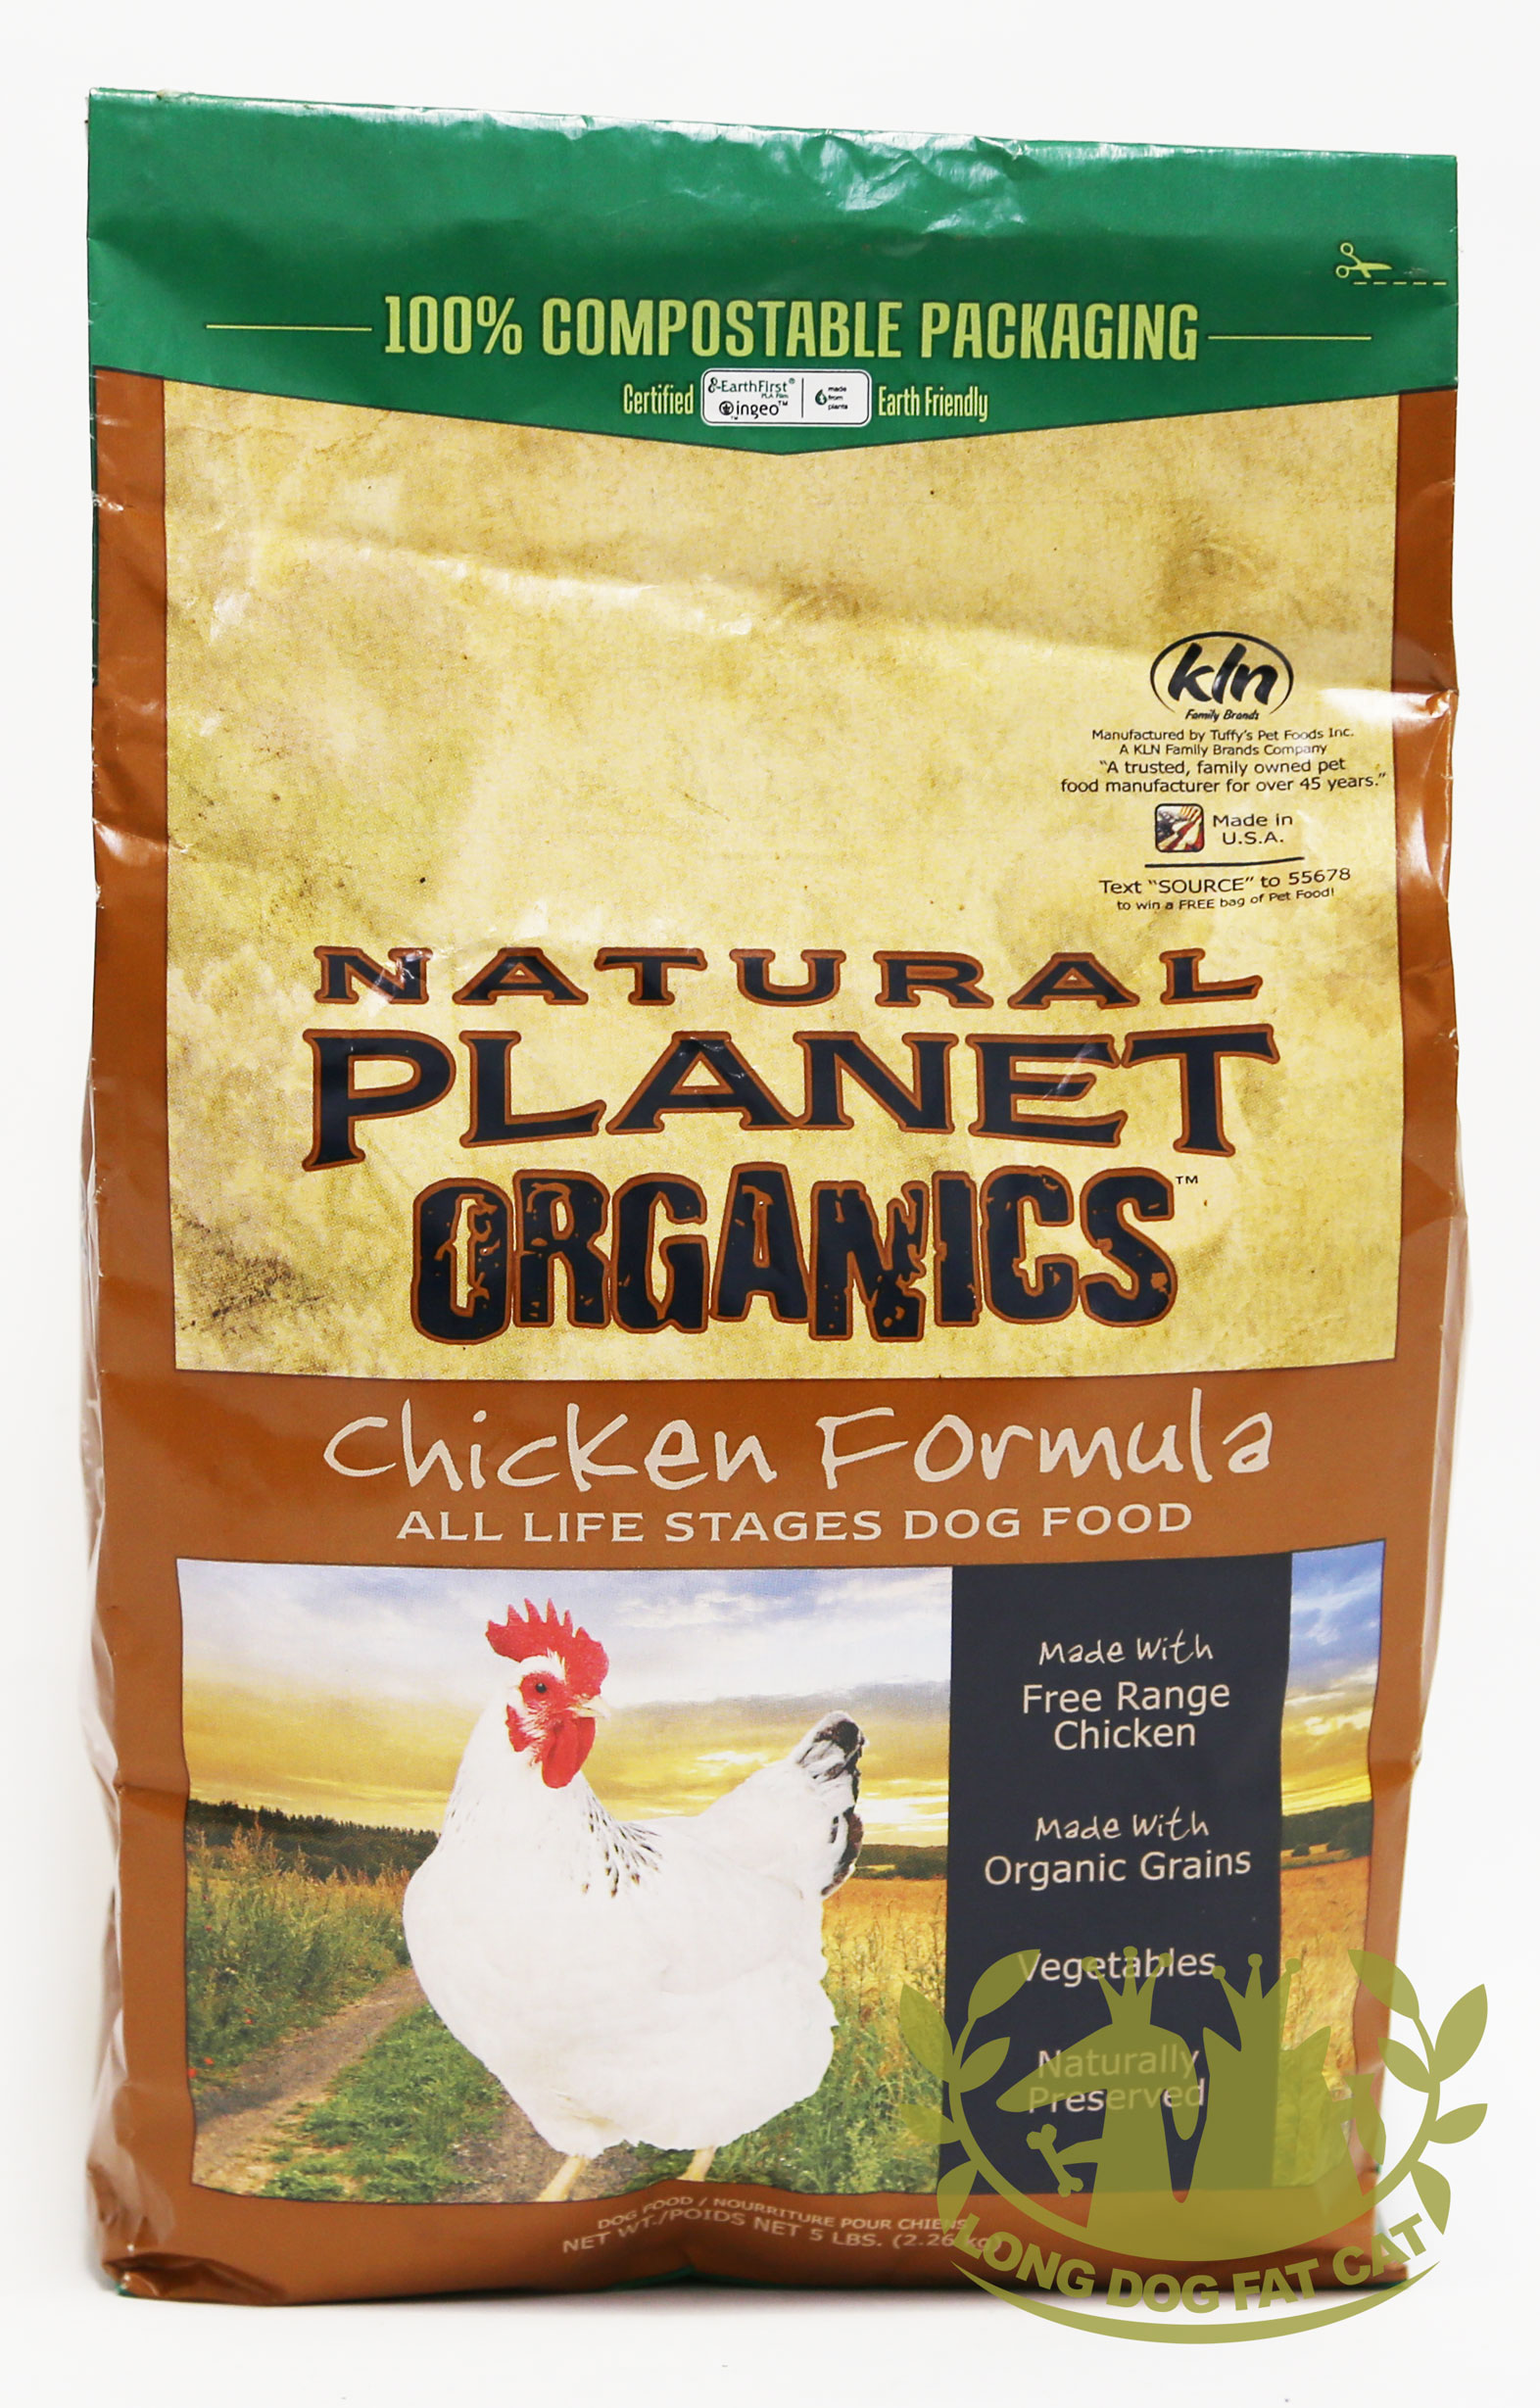 Natural Planet Organics Canned Cat Food Reviews